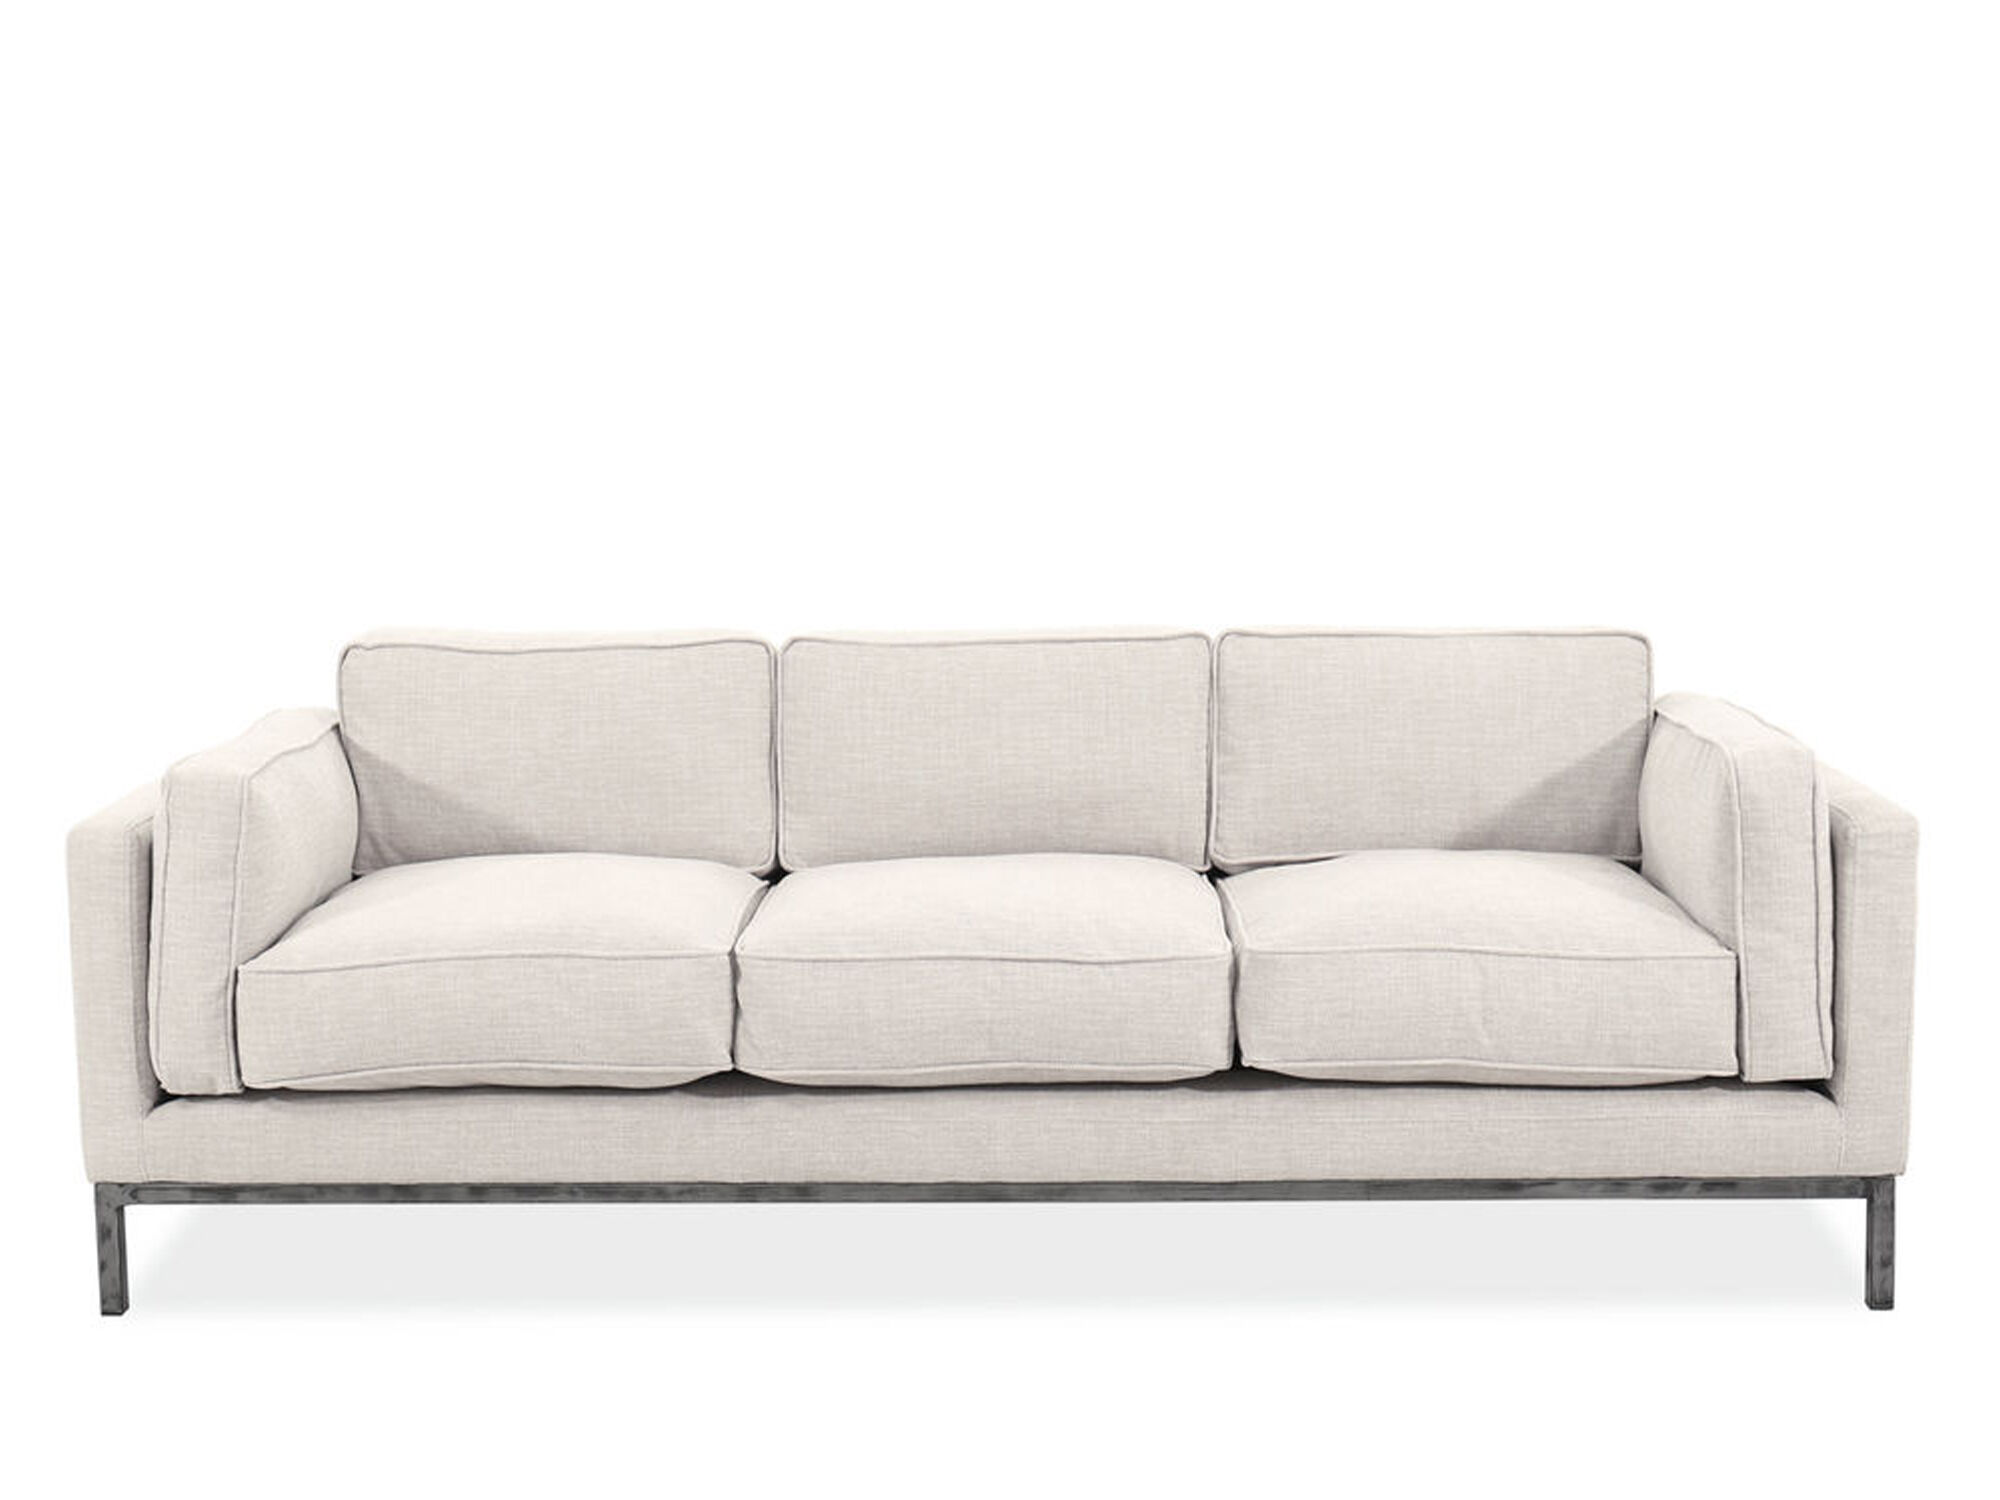 89u0026quot; Contemporary Low Profile Sofa In Beige ...